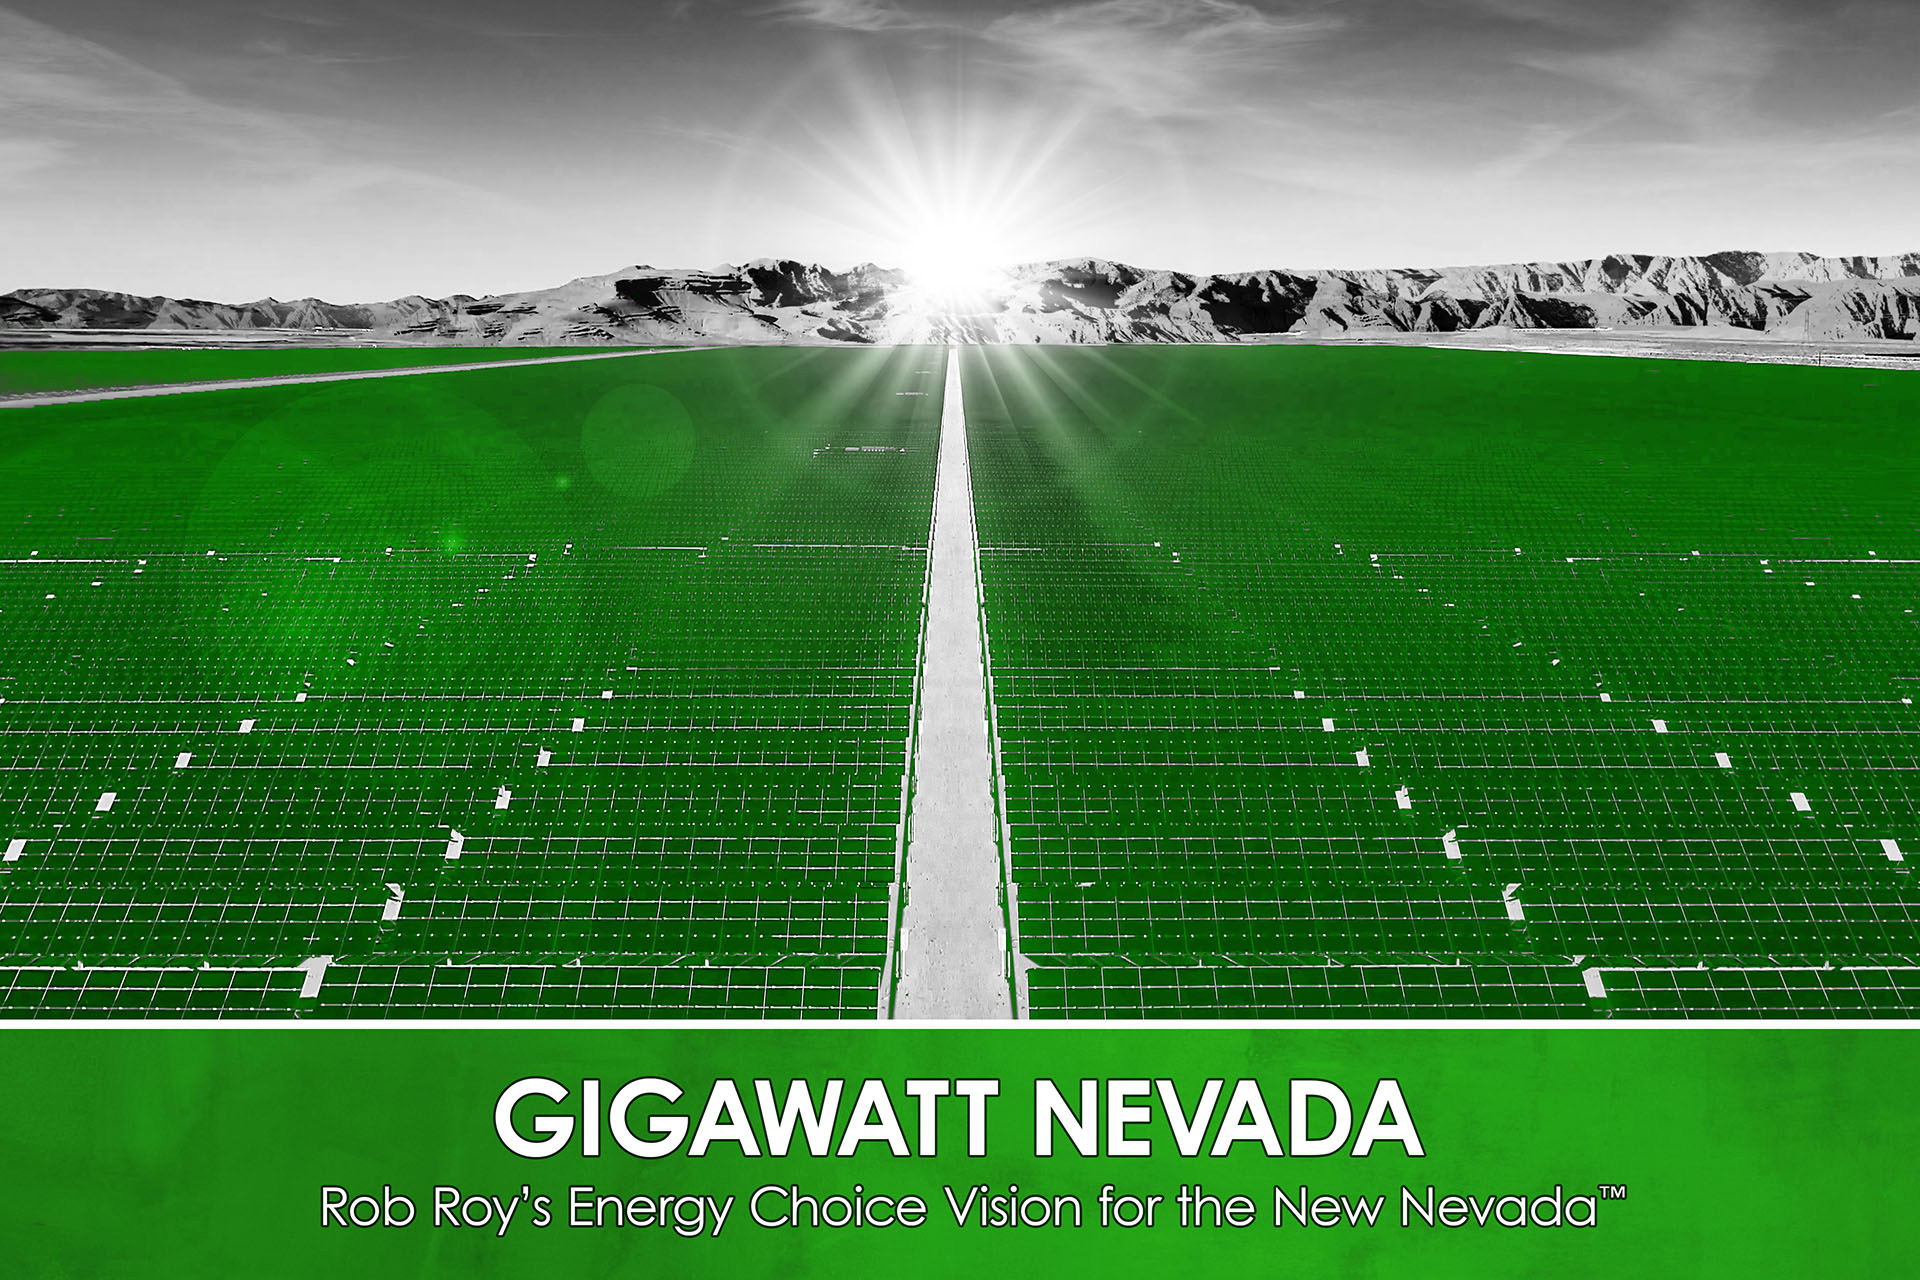 Switch Announces Rob Roy'sGigawatt Nevada, the Largest Solar Project in the United States